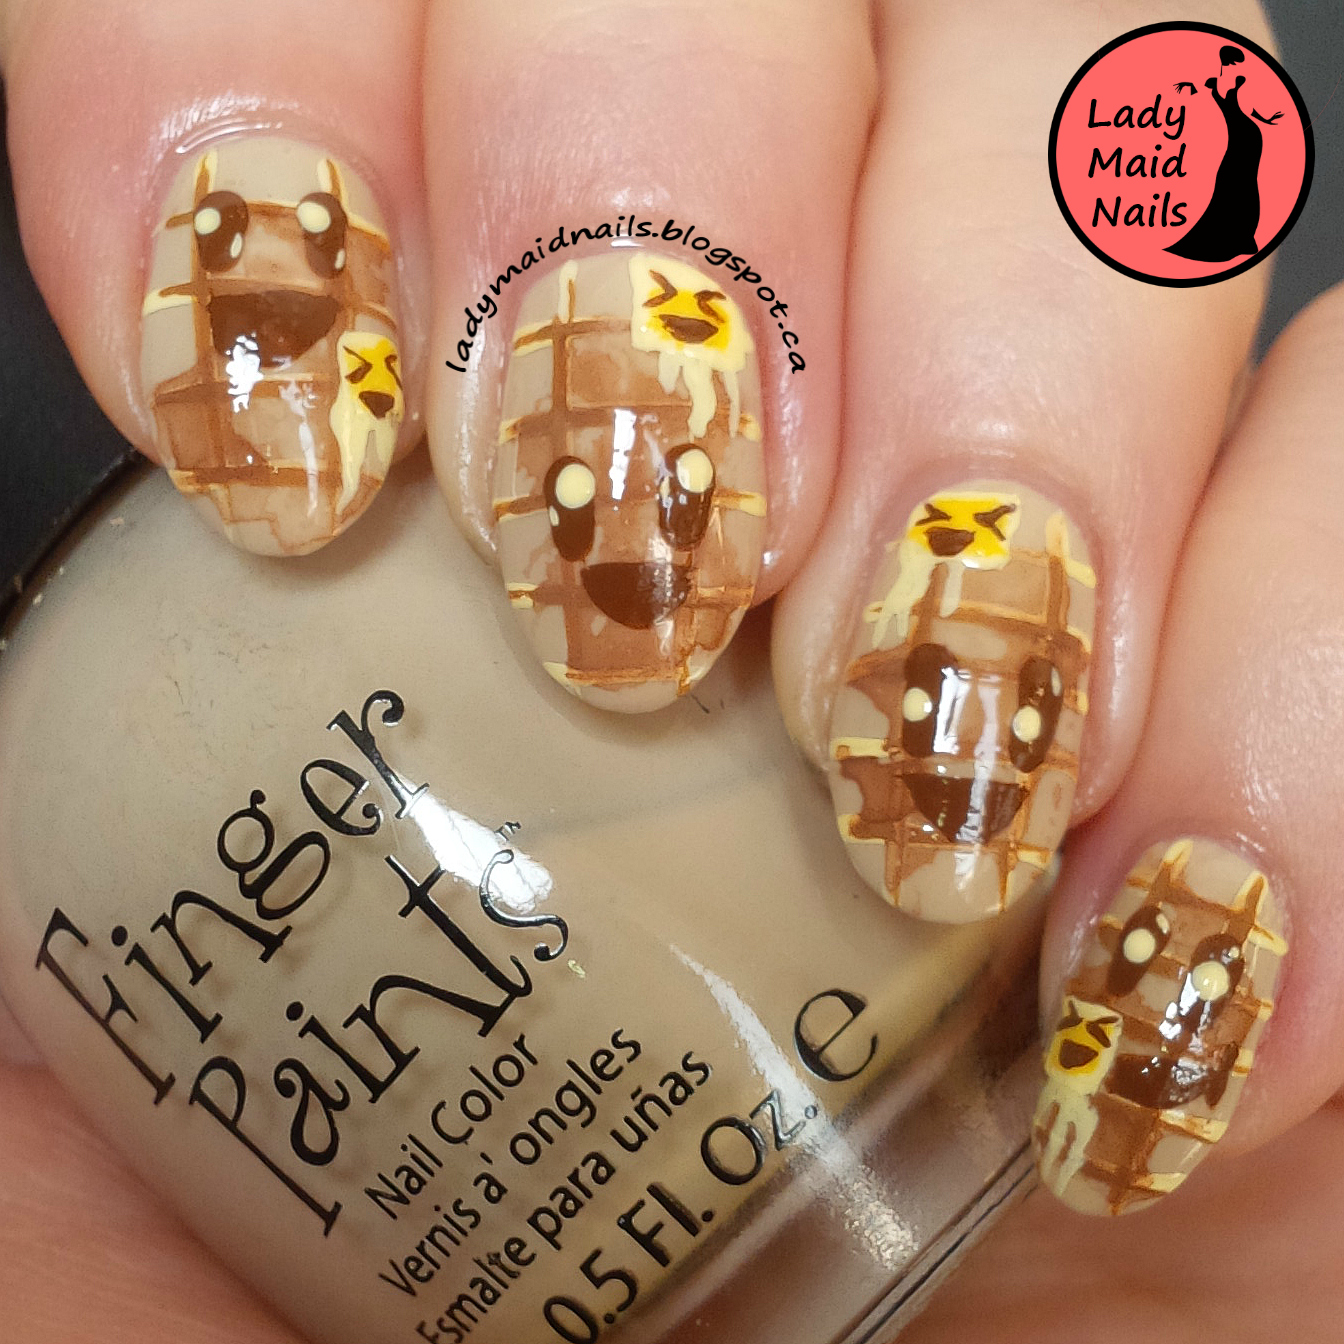 Lady Maid Nails: January 4, Happiness, Kawaii Nail Art, Waffles